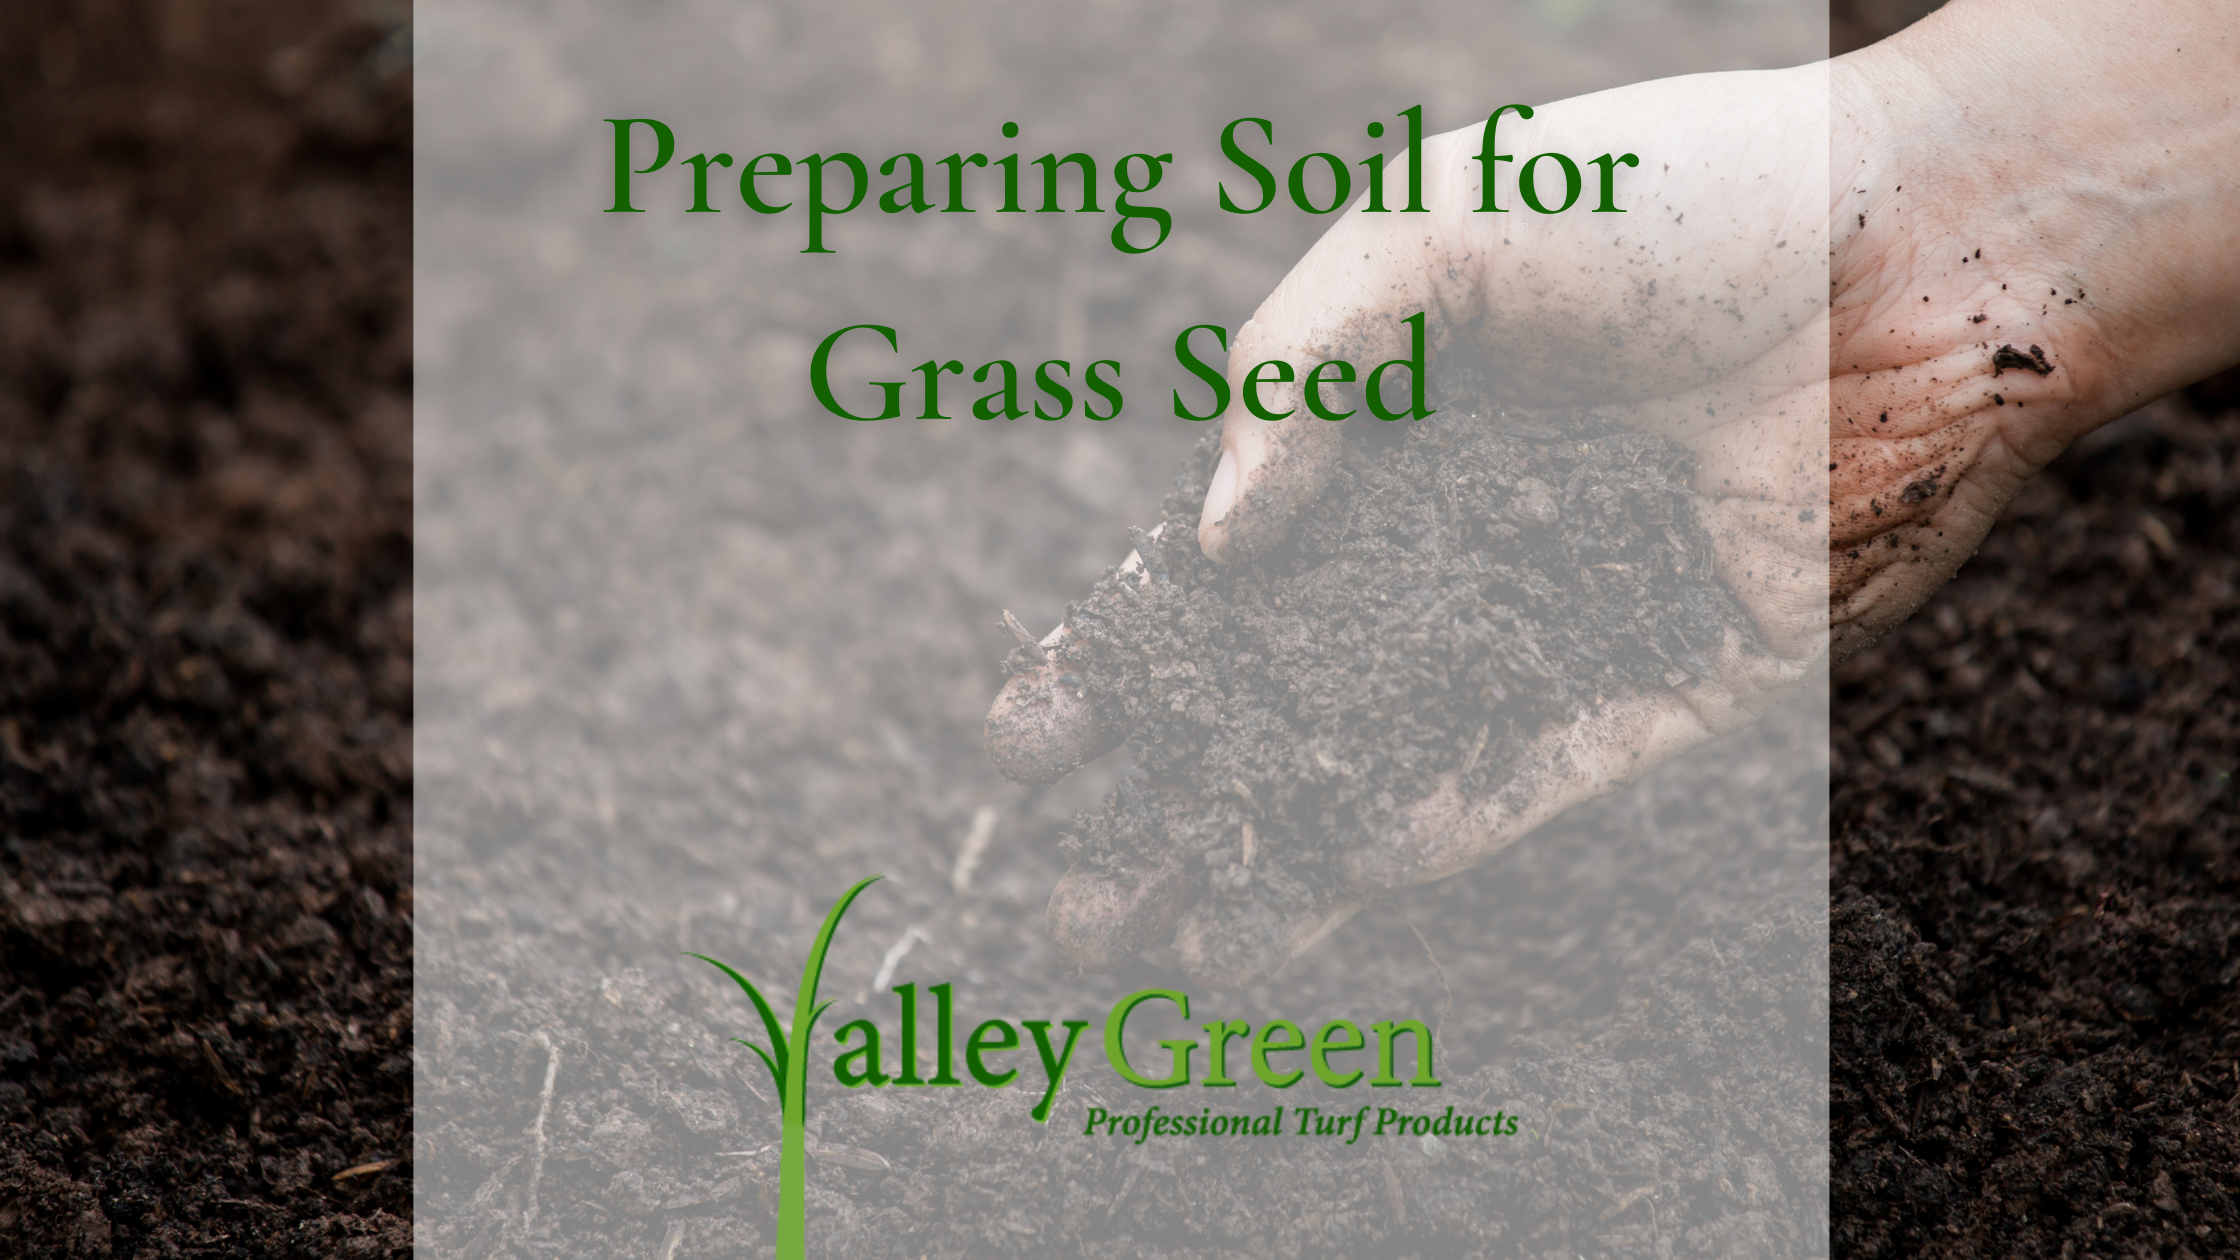 Preparing Soil for Grass Seed